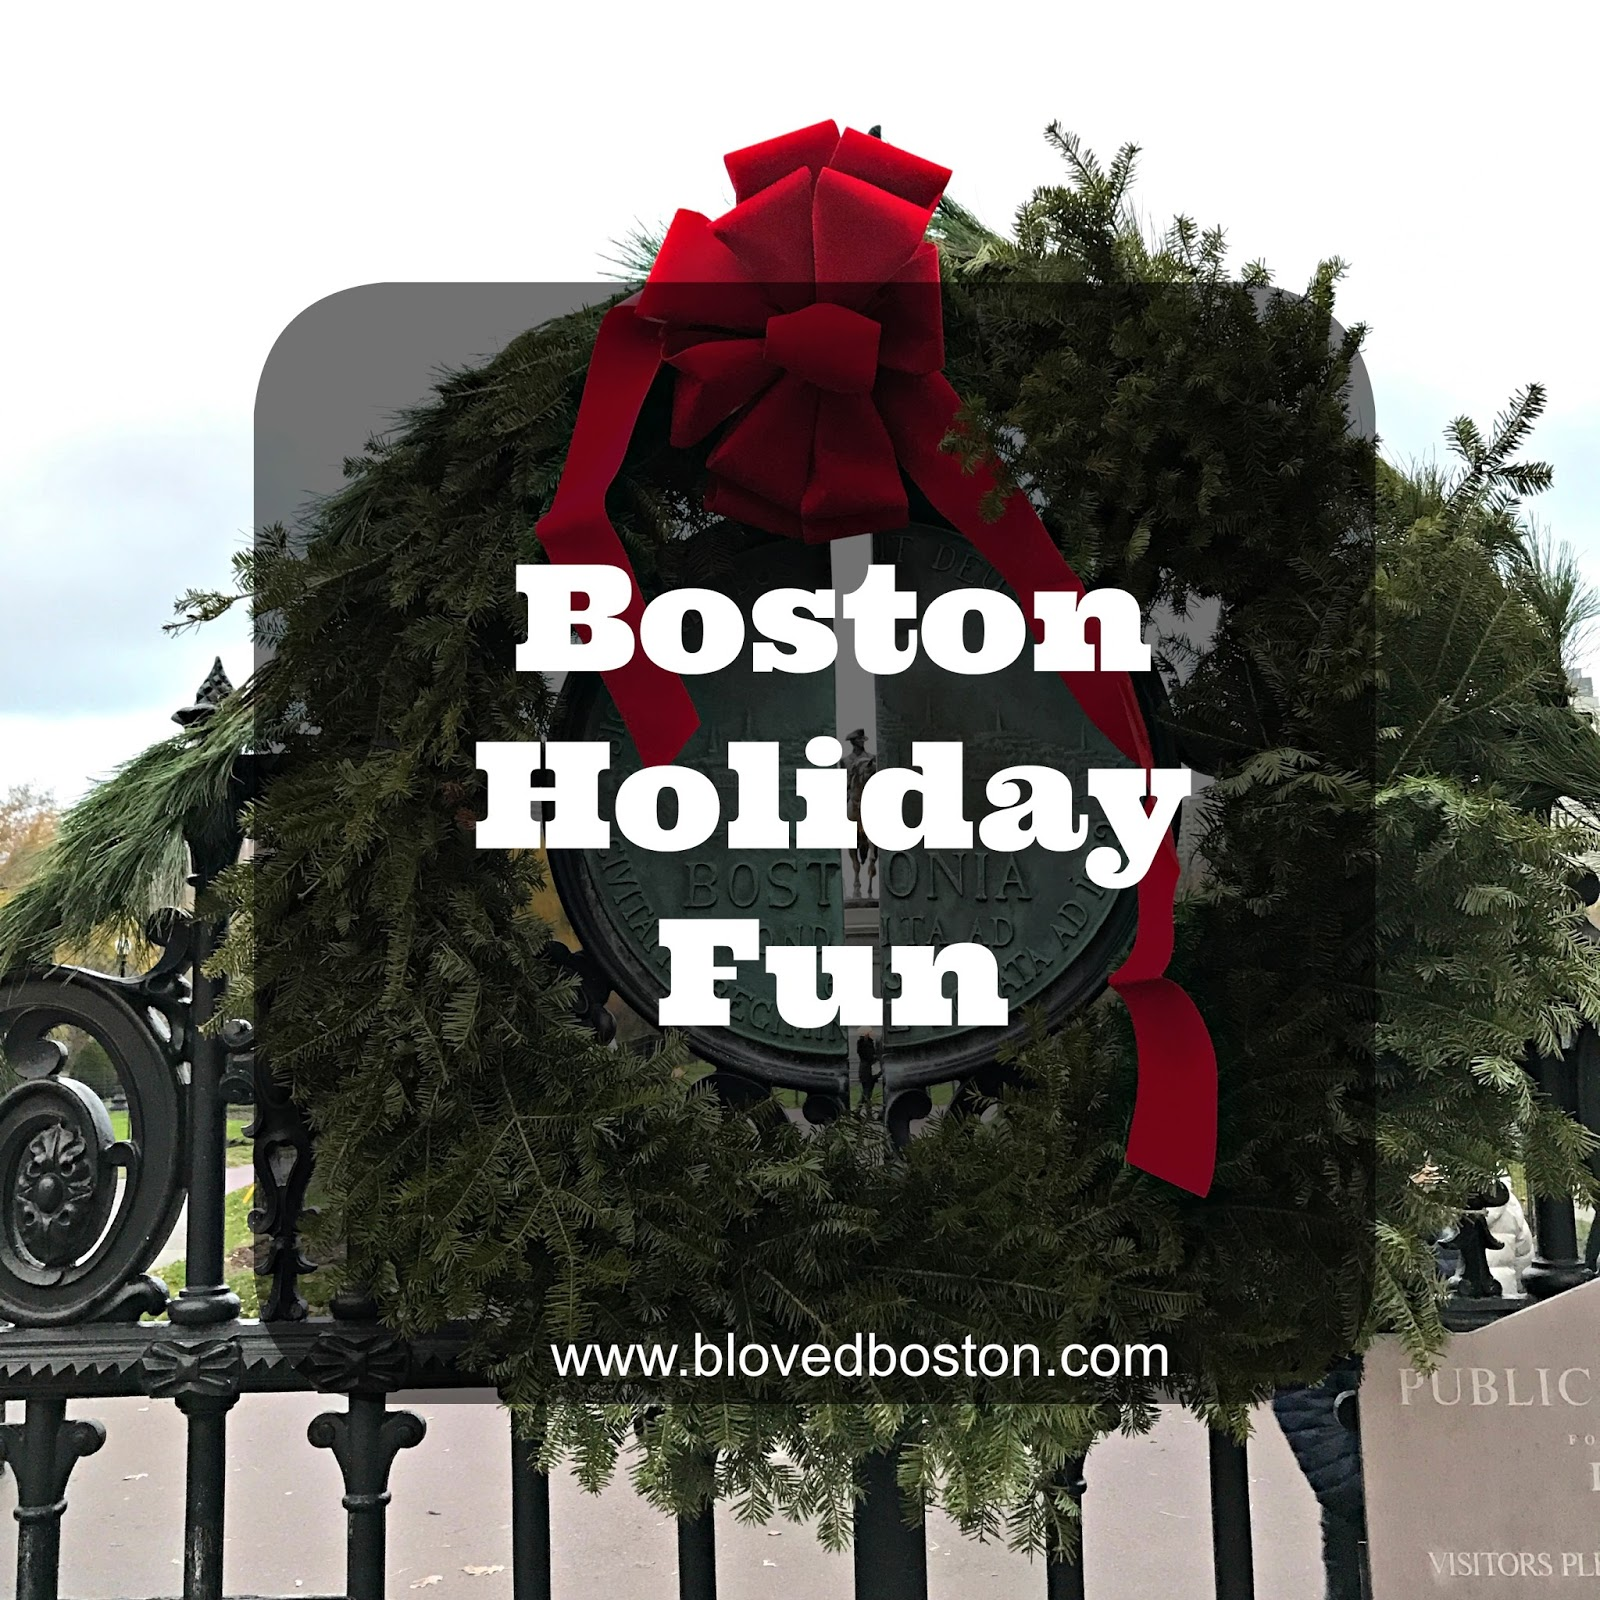 Boston Holiday Fun